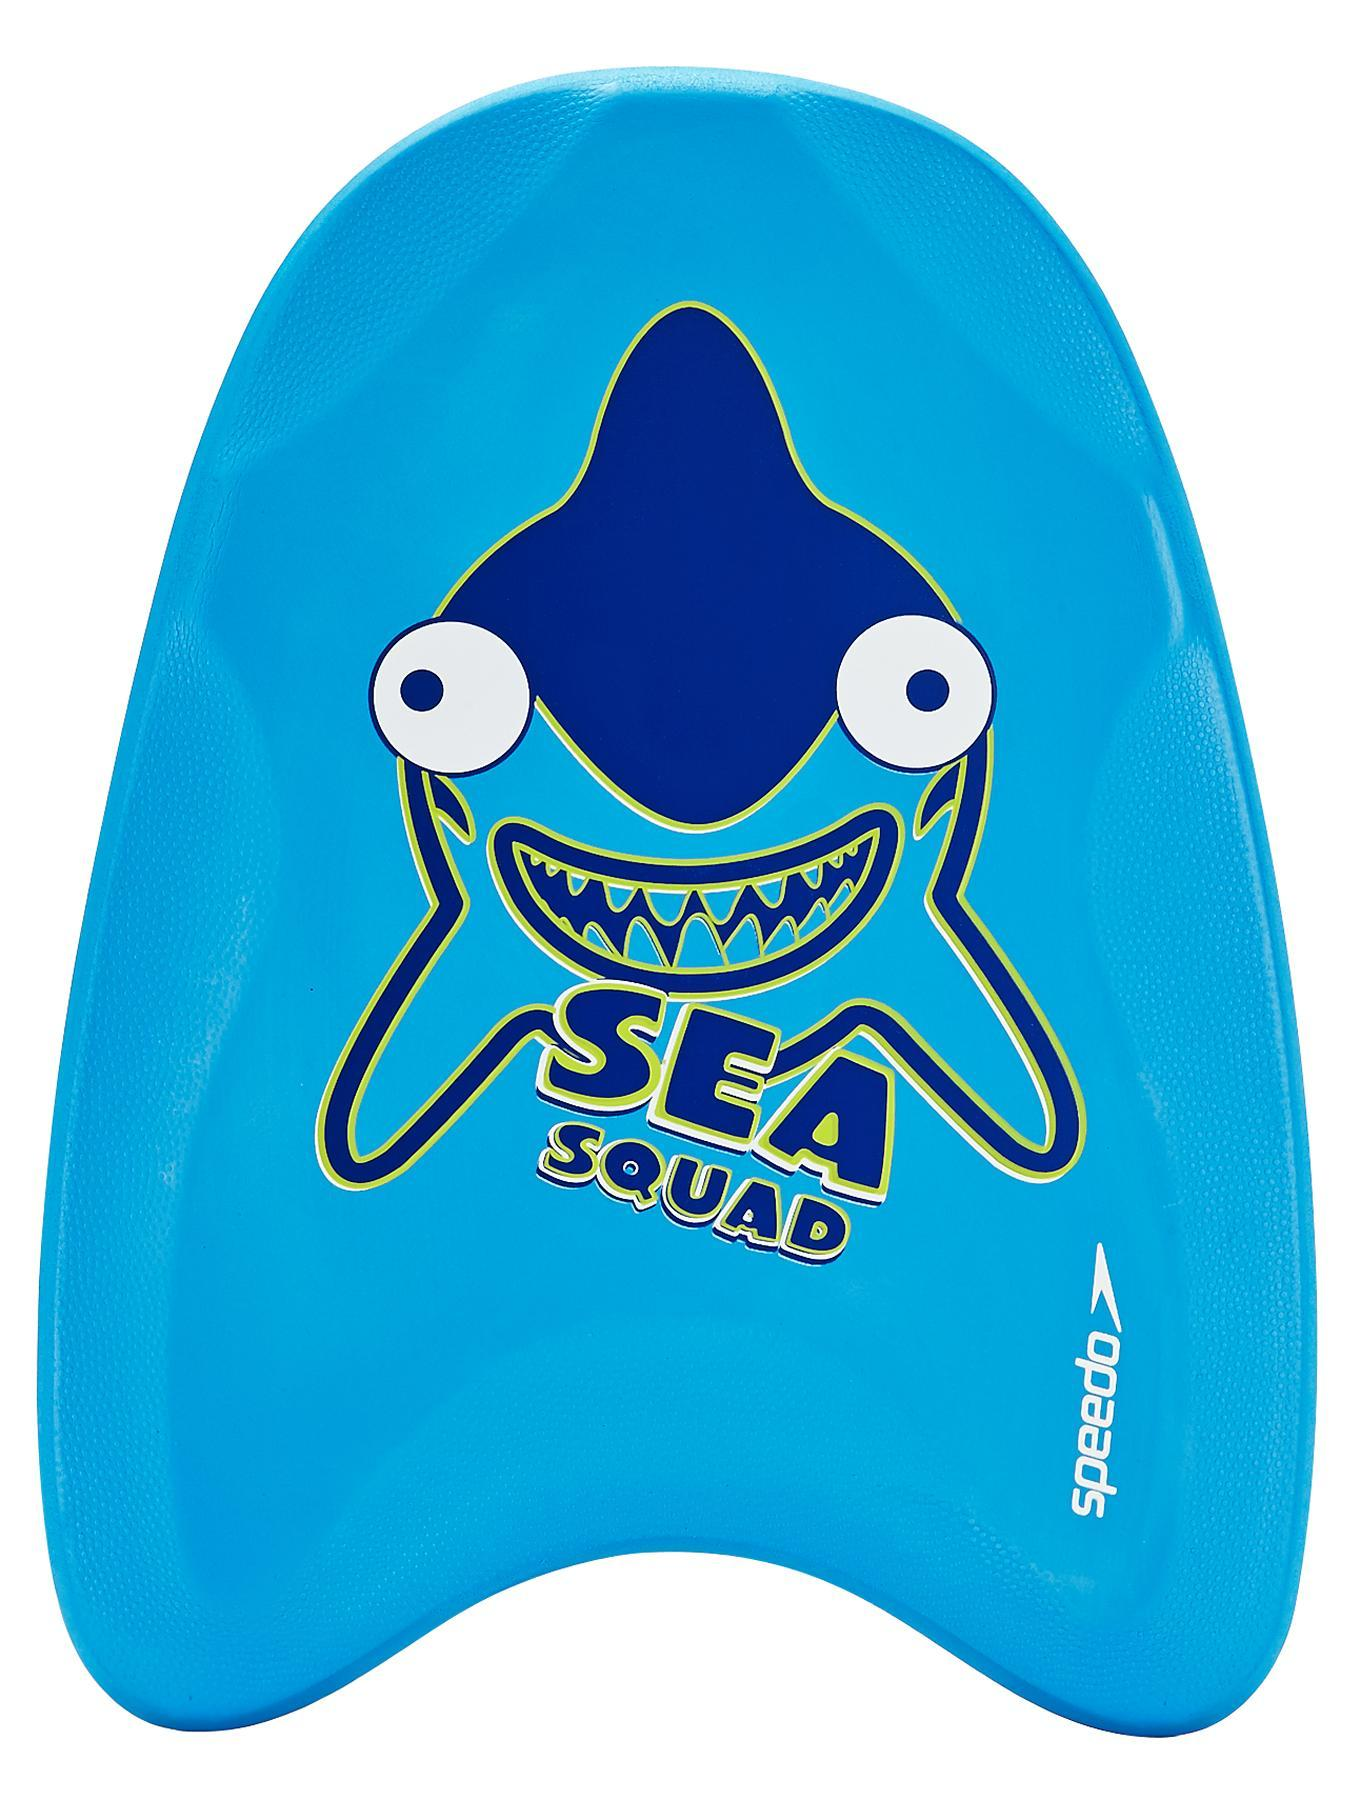 Speedo Boy Sea Aquad Kick Board